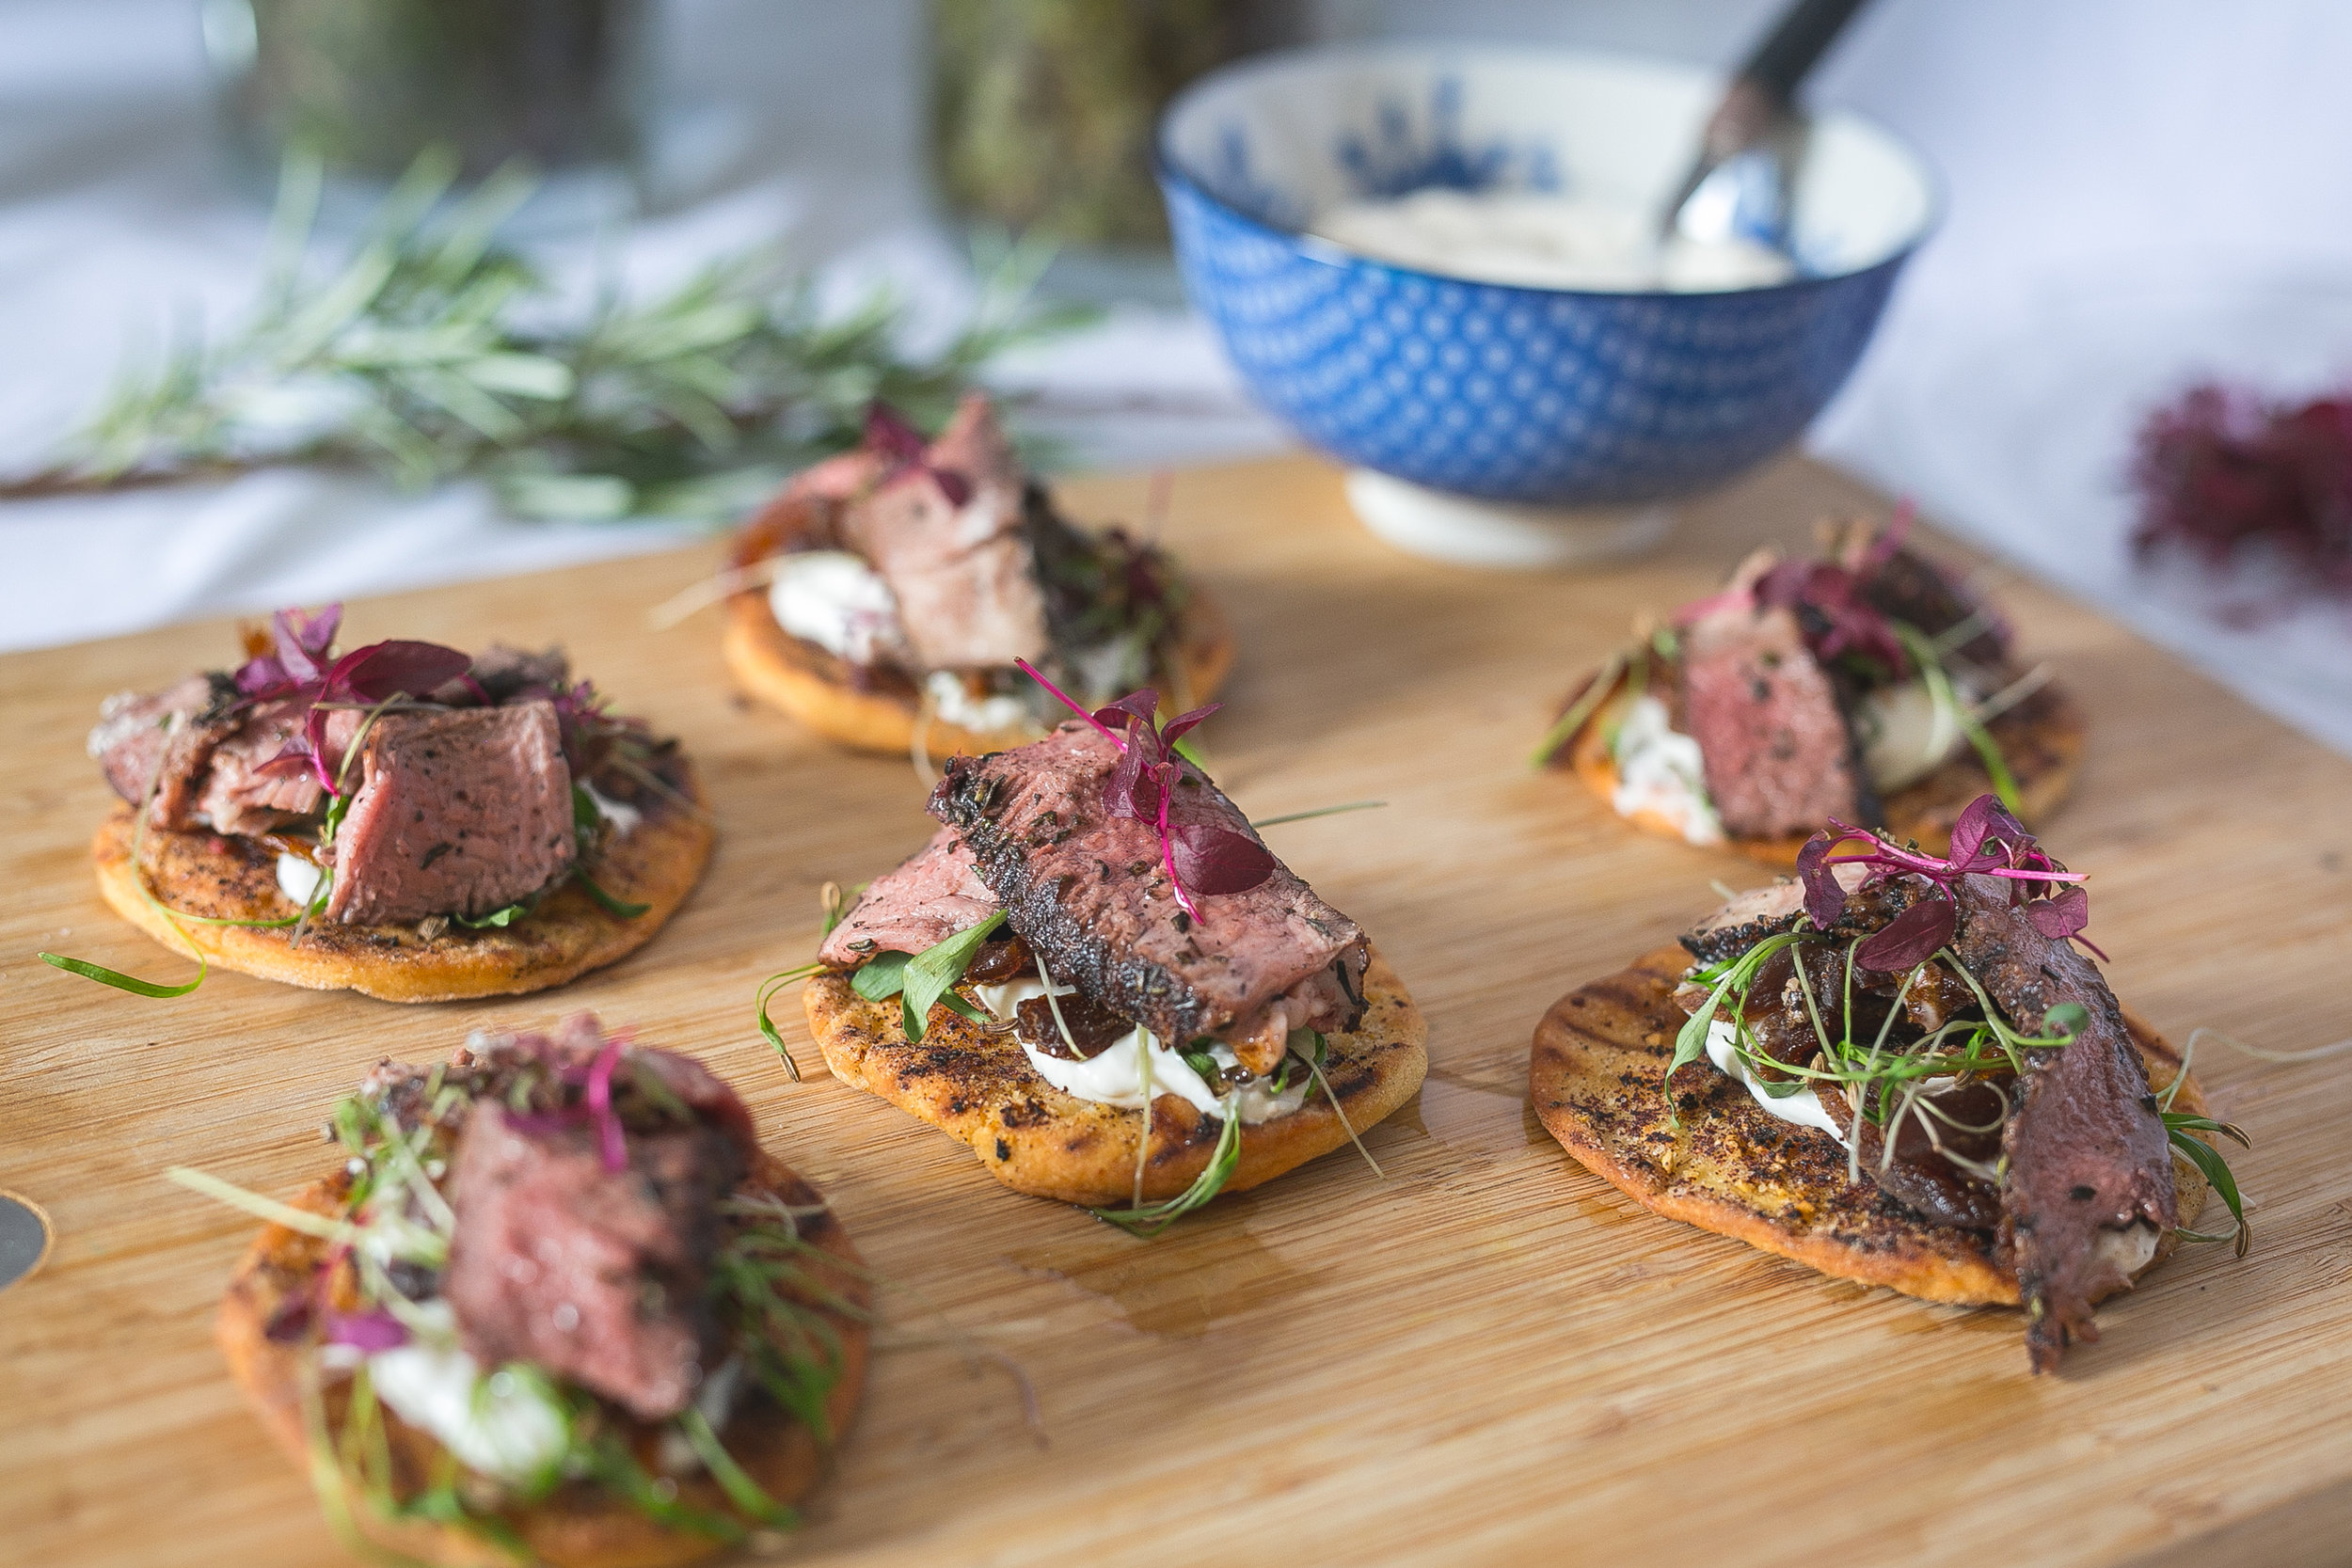 Higher Hacknell lamb chops with homemade flatbreads, rosemary labneh made with Rachel's Organic Greek yoghurt and Crazy Jack apricots